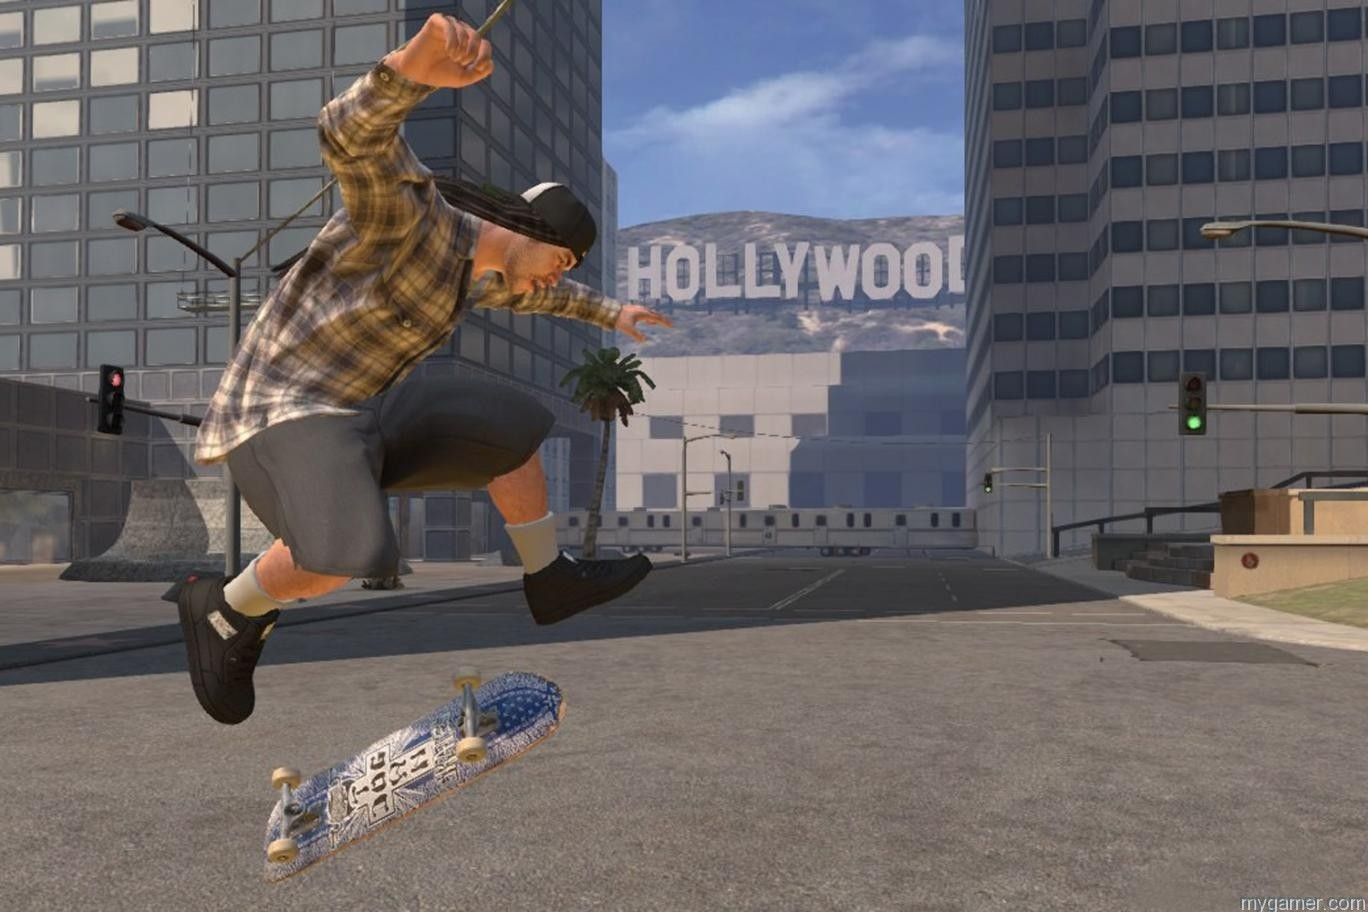 Pro Skater 5 Gameplay  Tony Hawk's Pro Skater 5 Preview Tony Hawk's Pro Skater 5 Preview tonyhawkproskater5